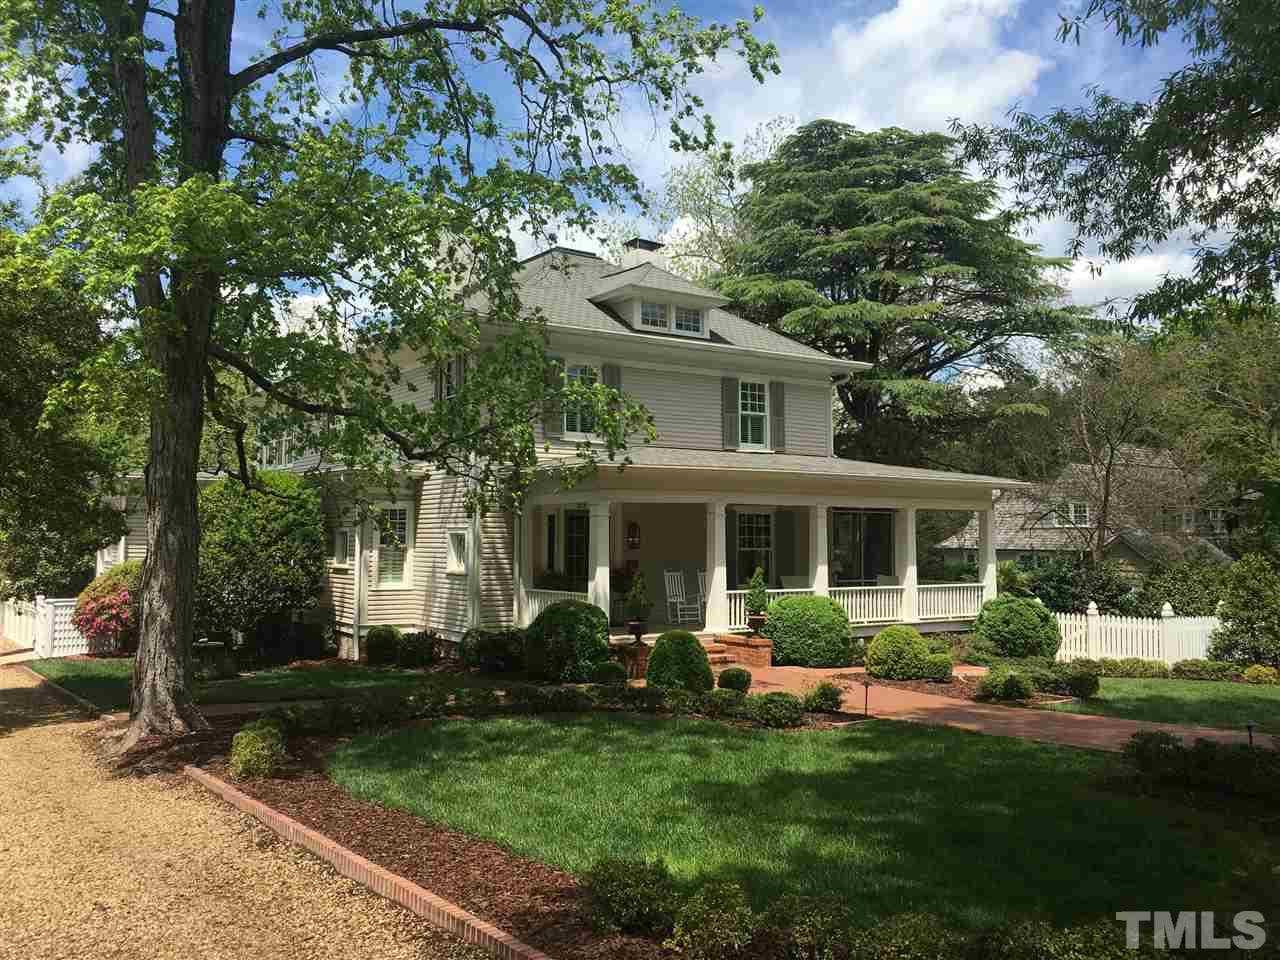 $1,985,000 - 4Br/4Ba -  for Sale in Historic District, Chapel Hill